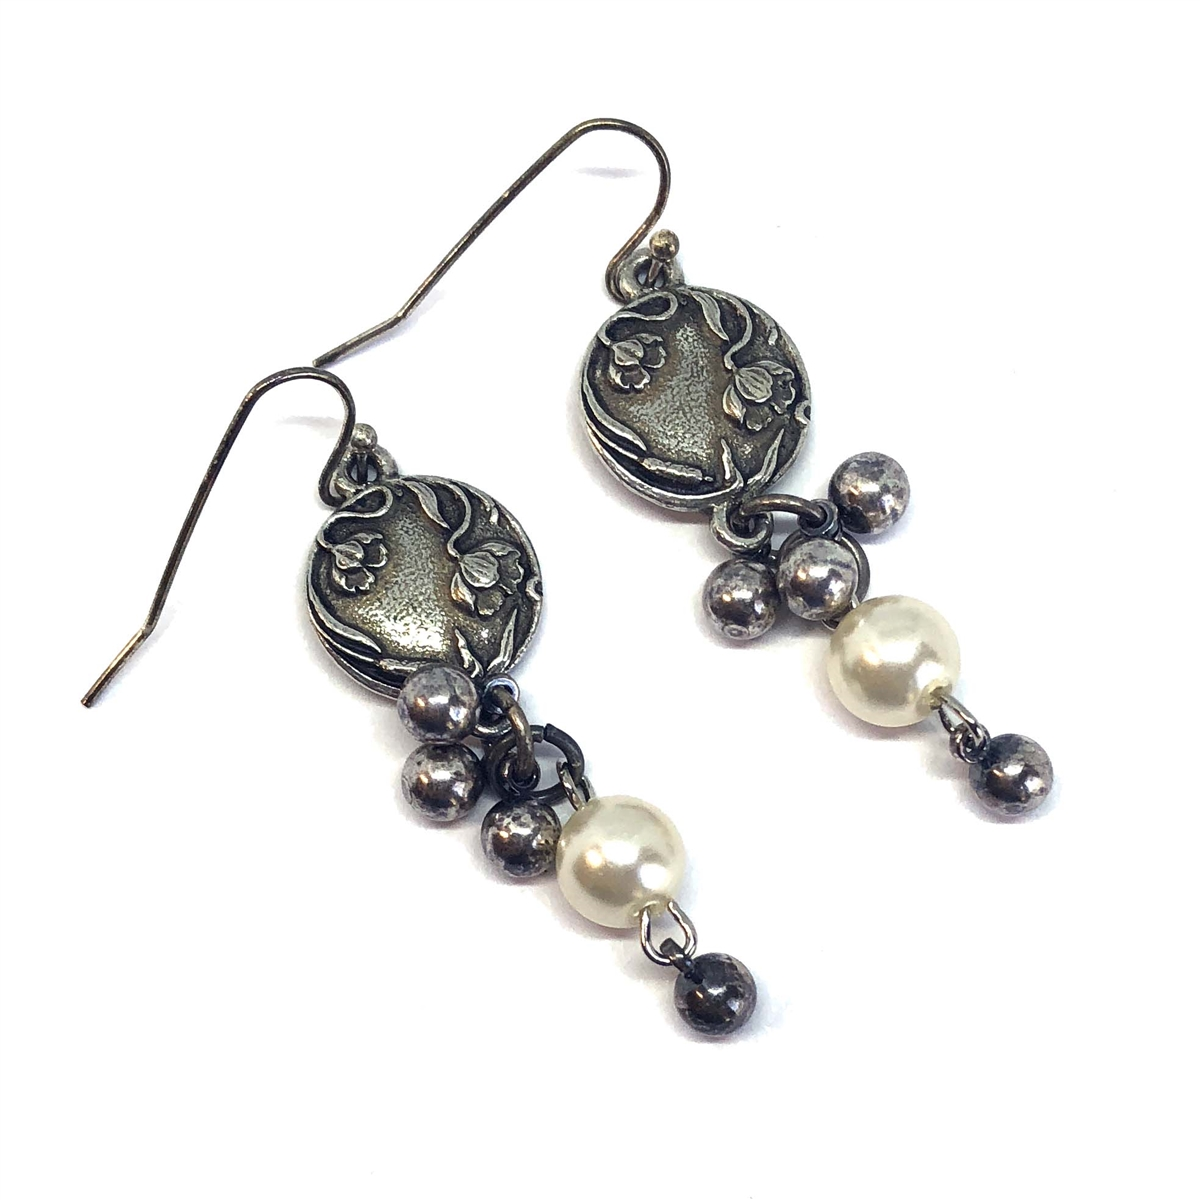 Old Silver Earrings 1928 Jewelry Parts Handmade By B Sue Pearl